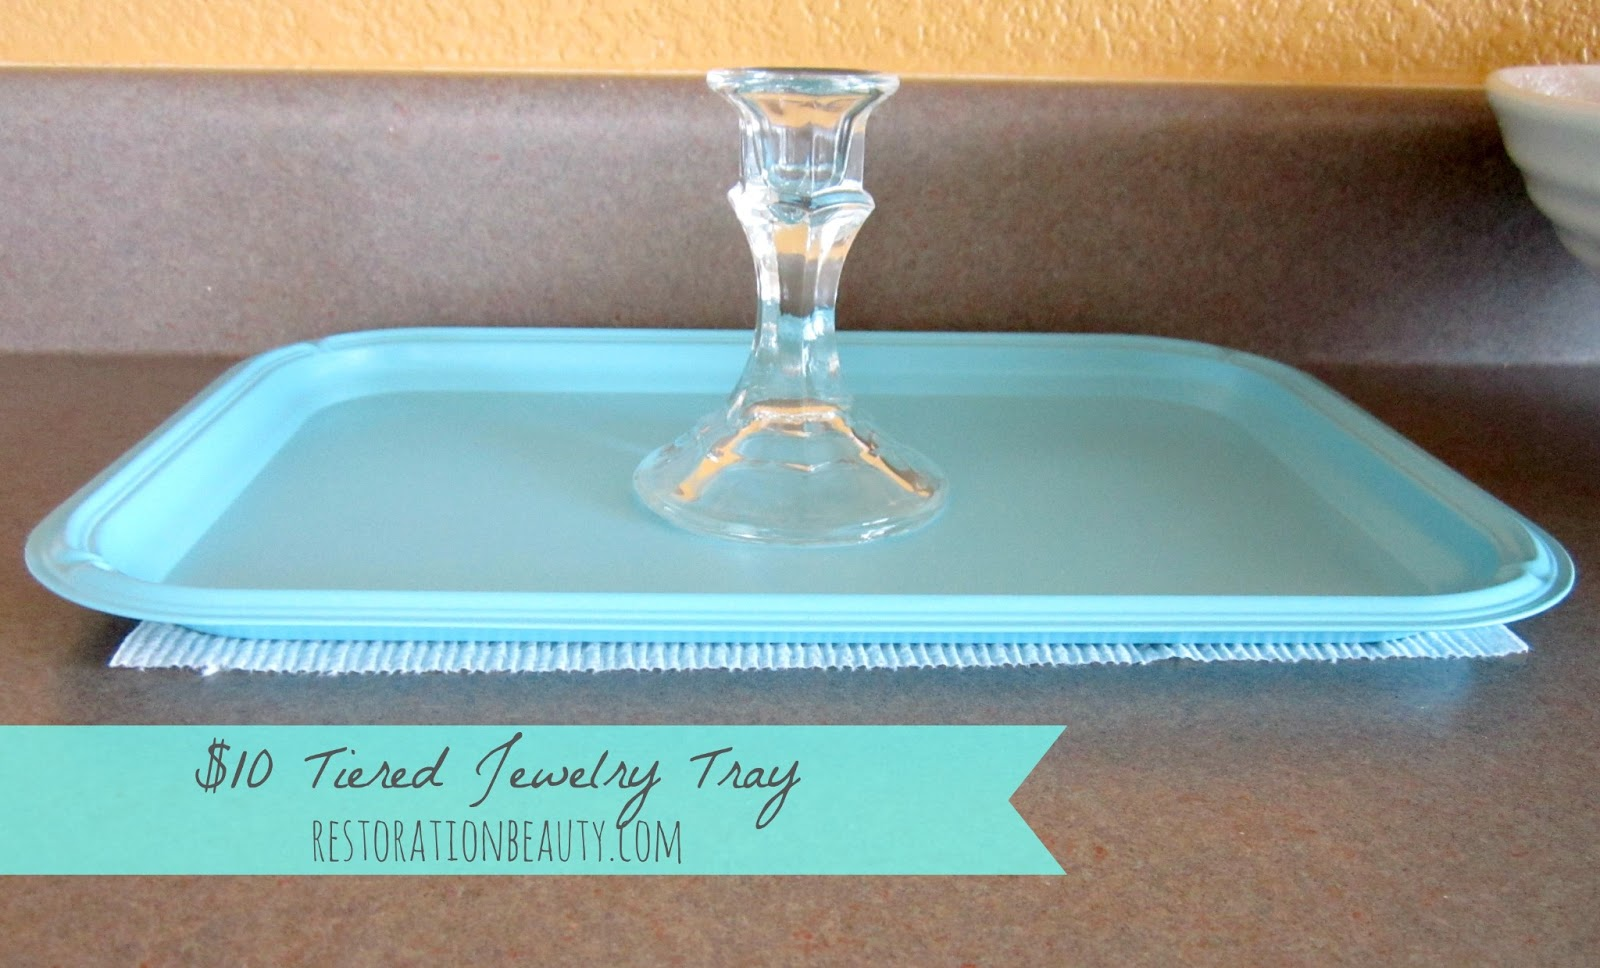 Restoration Beauty 10 Tiered Jewelry Trays Using mostly Supplies